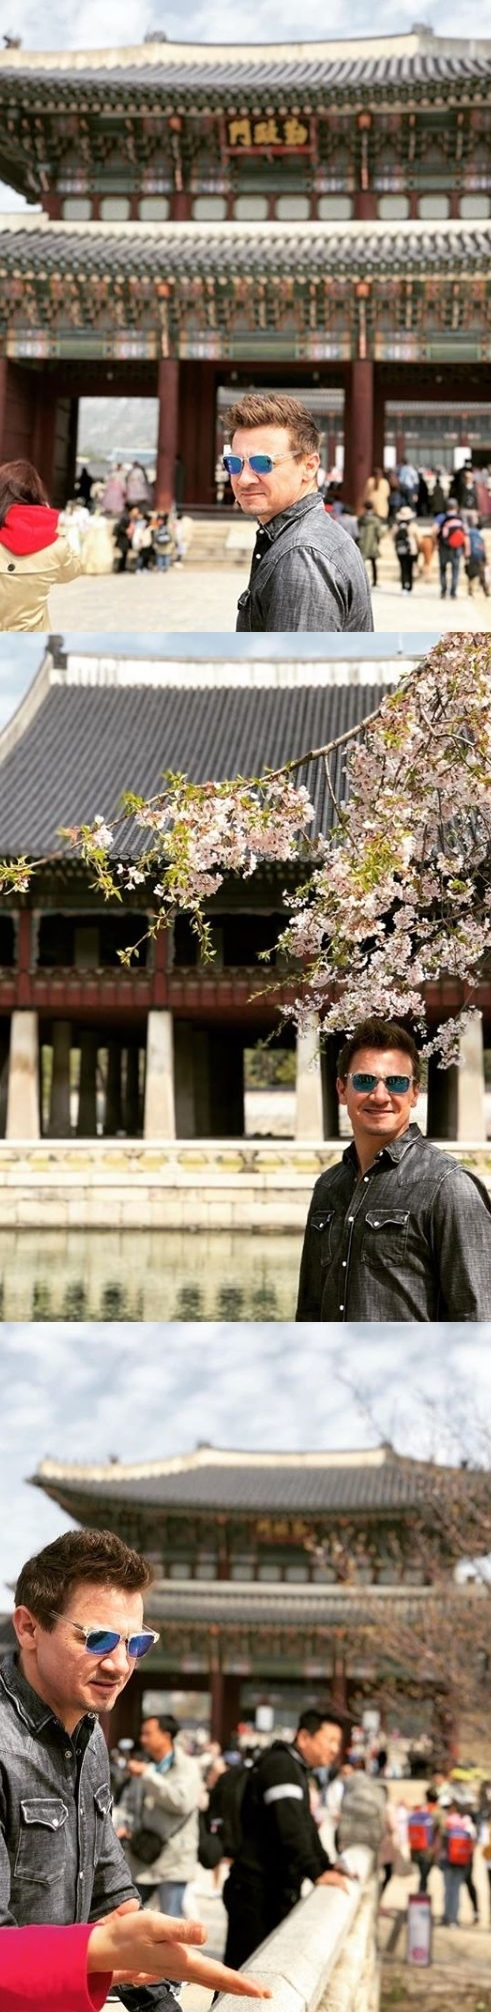 <p>Jeremy Renner on the 13th - hot welcome by Korea to the fans Thank You to.....article was published. Along with this Jeremy Renner at the airport himself to meet for Korea fans and meeting photographs public.</p><p>Jeremy Renner is Gyeongbokgung tour situation. He Palace tour in Seoul for #avengersendgame #hawkeye #presstourcontinues #korea #seouland the hashtag and Gyeongbokgung in a photo taken together.</p><p>Meanwhile Jeremy Renner, this day in Hollywood blockbuster Avengers: End Game to promote car Incheon International Airport through immigration. Jeremy Renner, including Brie Larson for this day to dawn entry and, Robert Downey Jr., this afternoon at Gimpo International Airport through immigration. These are only 15 days until Korea in the official schedule.</p>